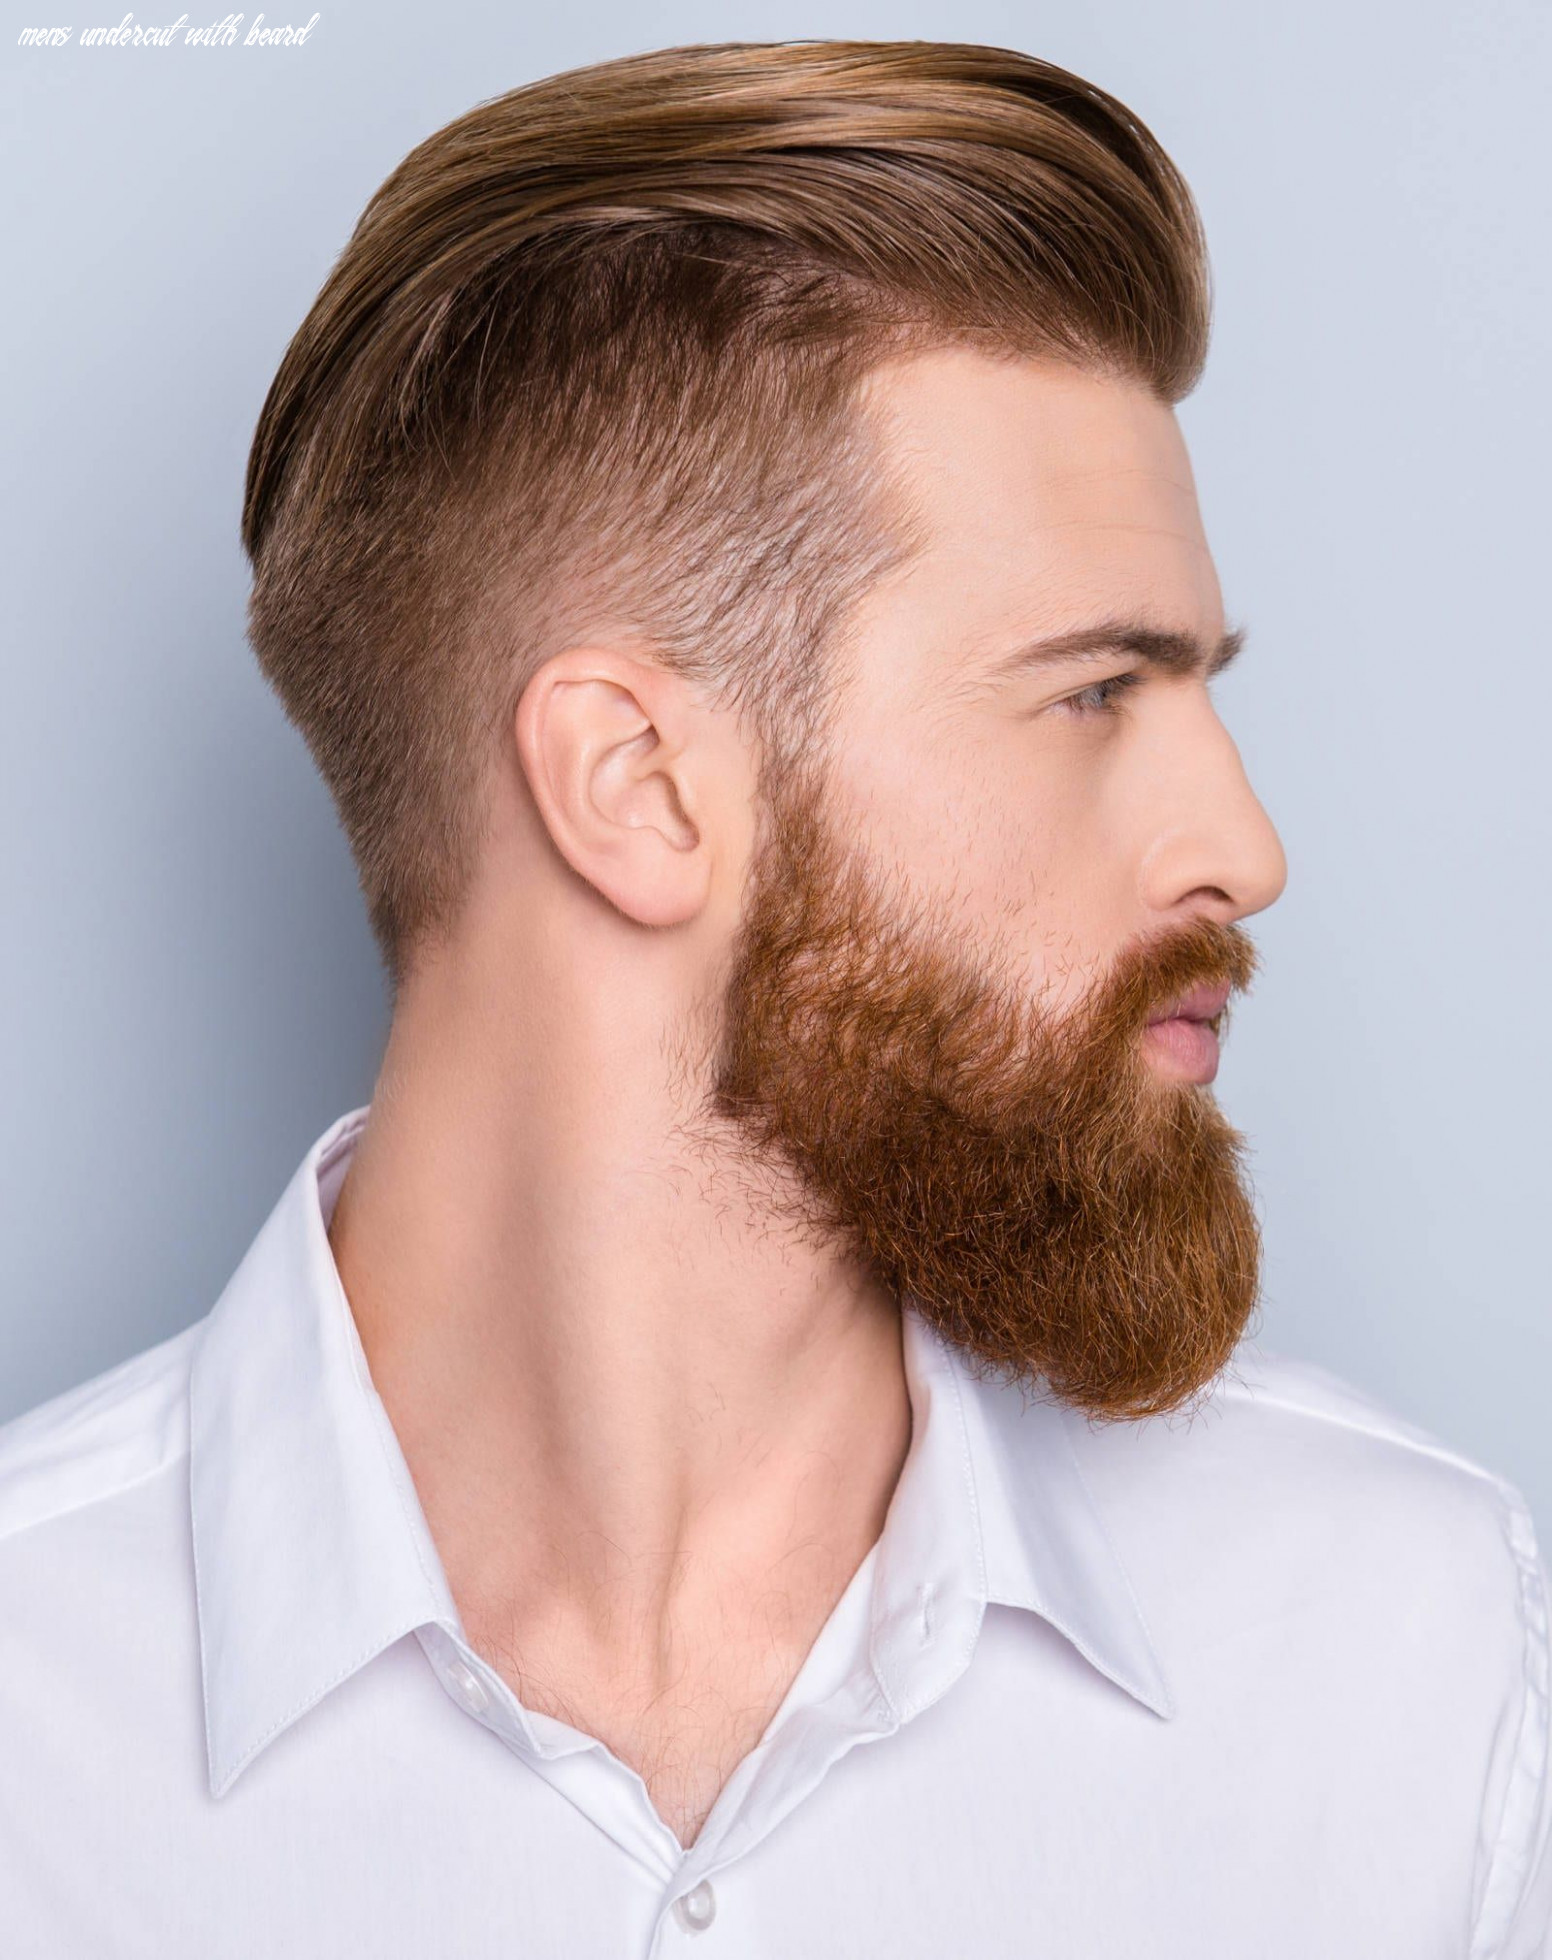 Top 10 hairstyles for men with beards | mens hairstyles undercut